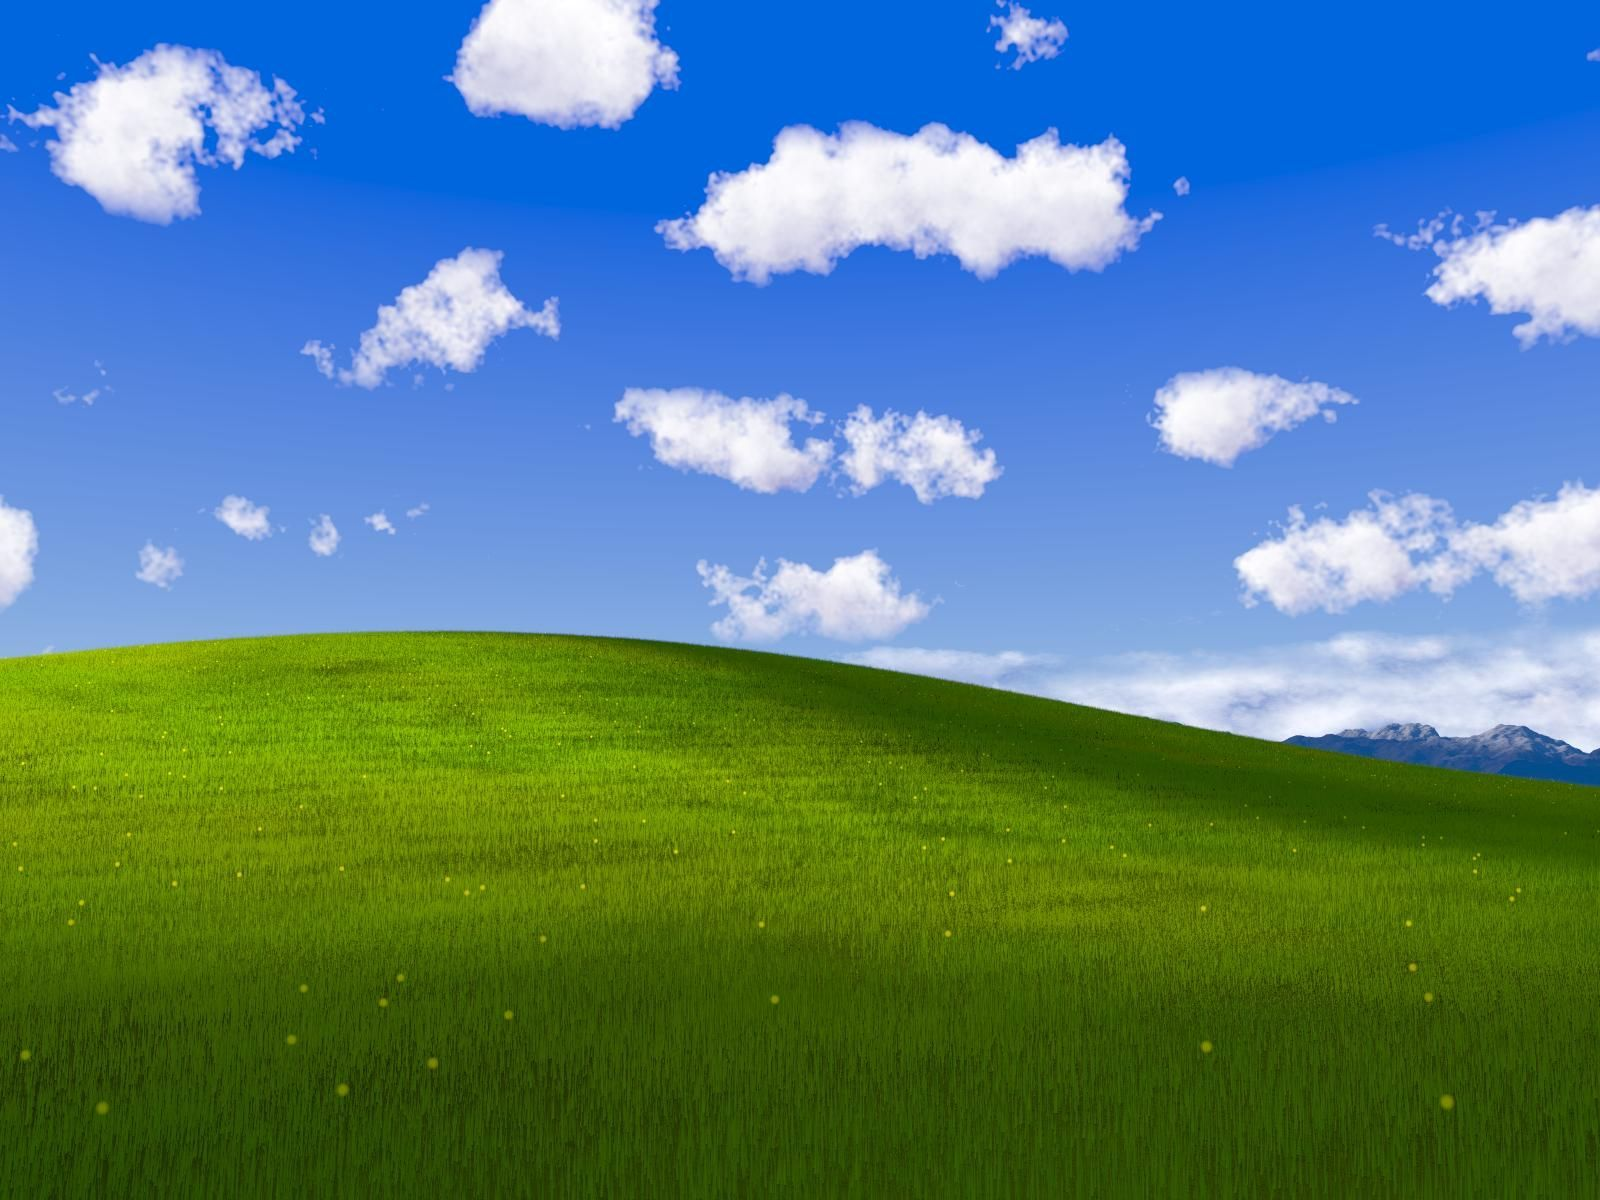 Windows Xp Original Wallpaper 16001200 Windows Xp Original Wallpapers 47 Wall 4k Original Wallpaper Beautiful Wallpapers Wallpaper